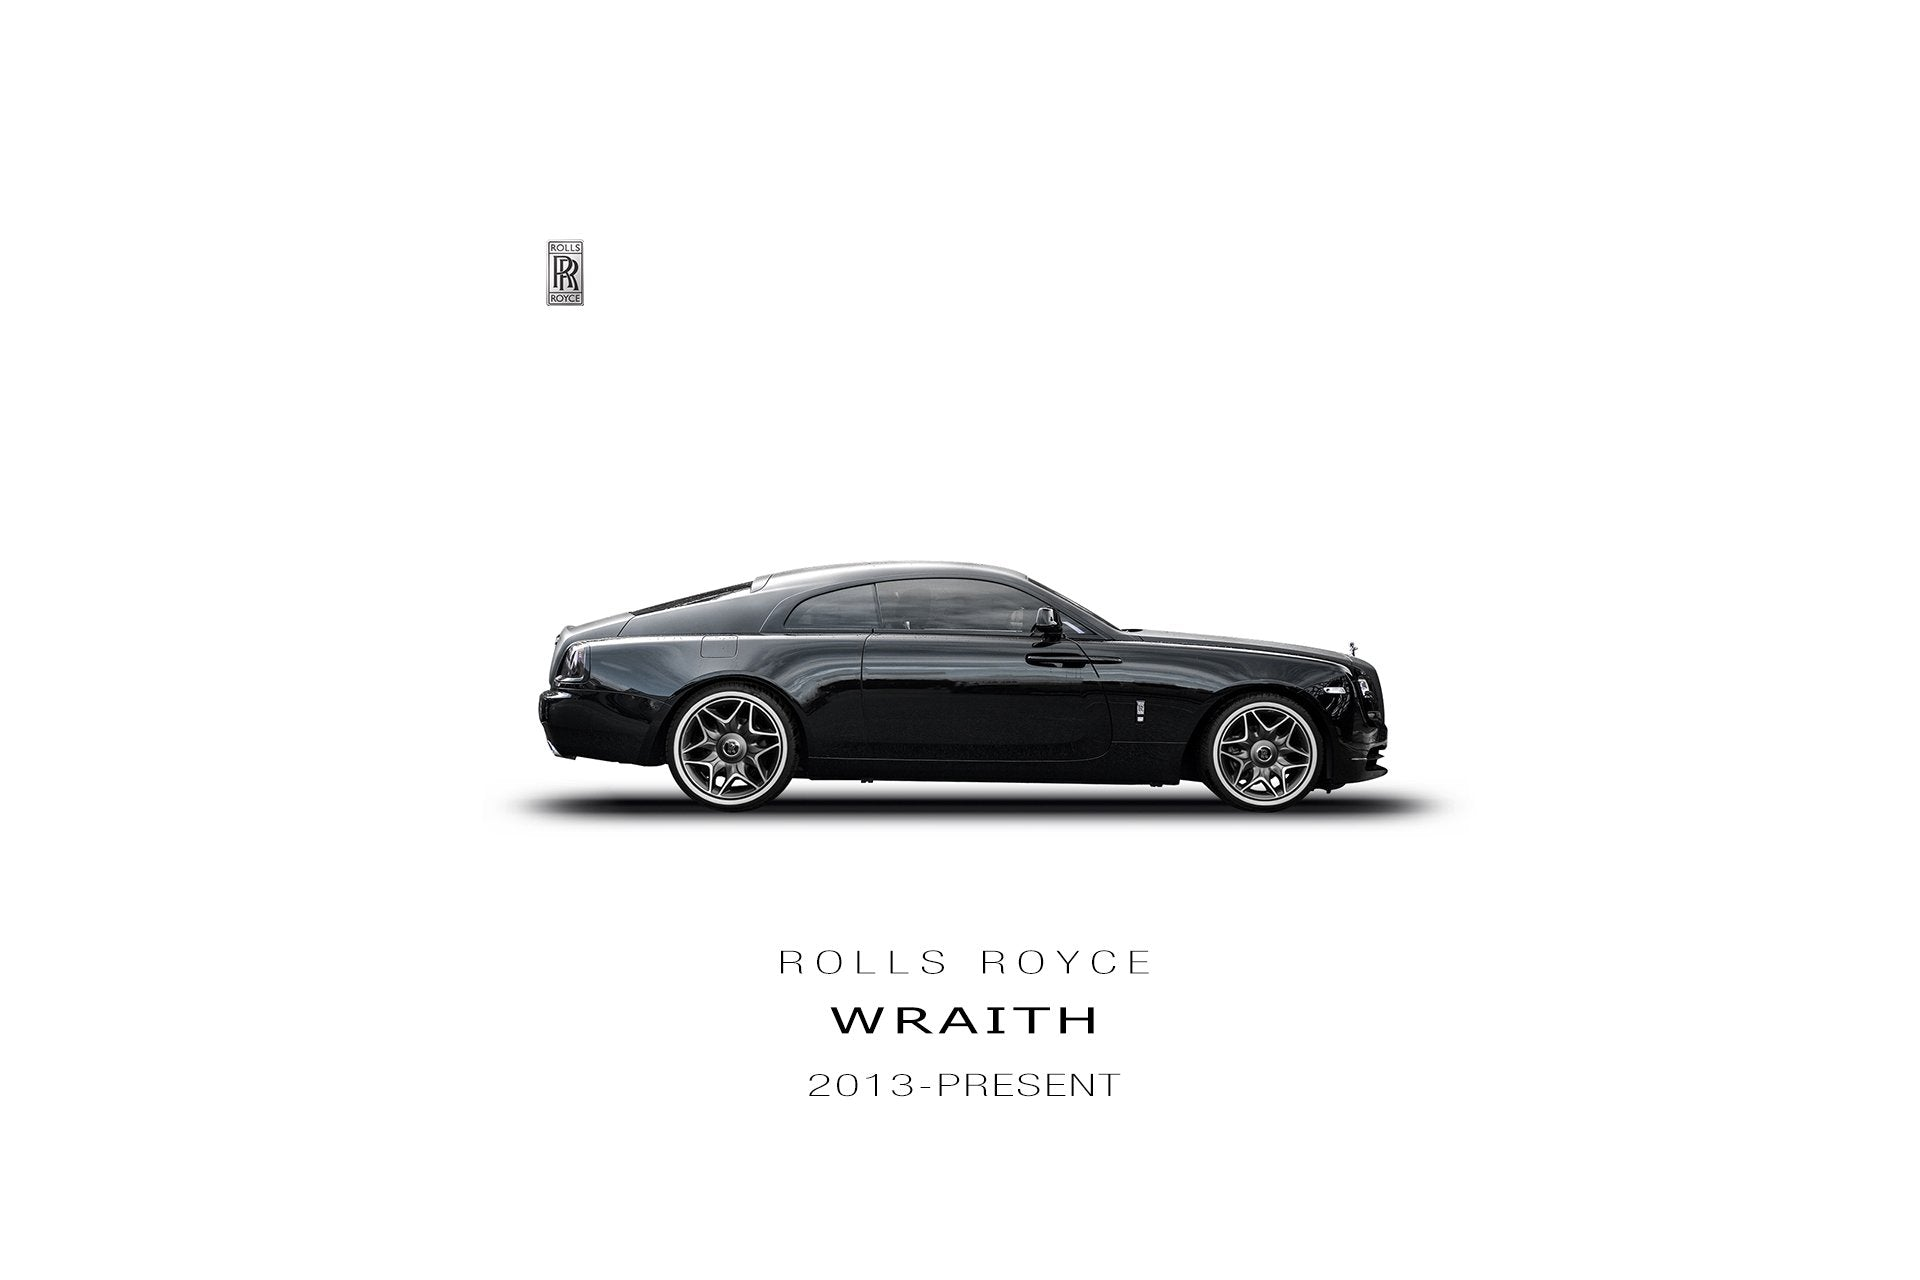 Rolls Royce Wraith (2013-Present) Tailored Conversion by Kahn - Image 305